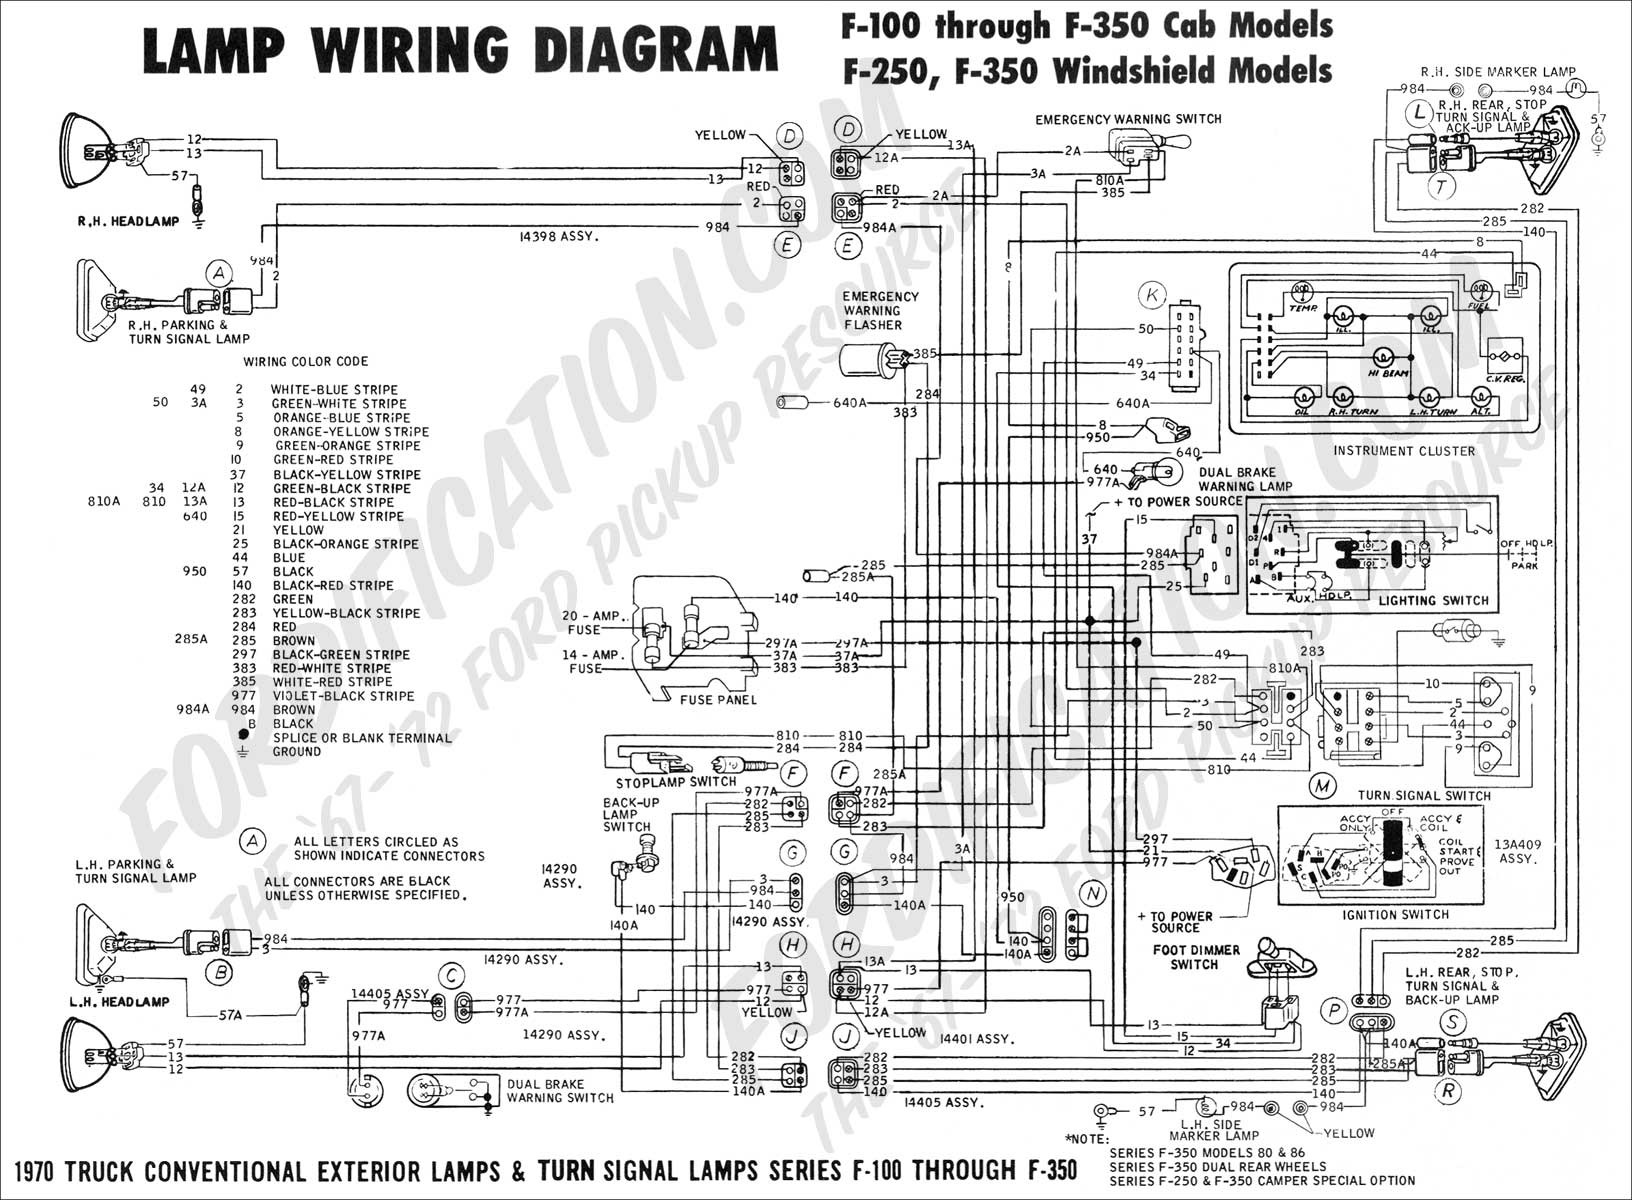 merkur xr4ti wiring diagram download wiring diagrams u2022 rh wiringdiagramblog today F250 Wiring Diagram F250 Wiring Diagram